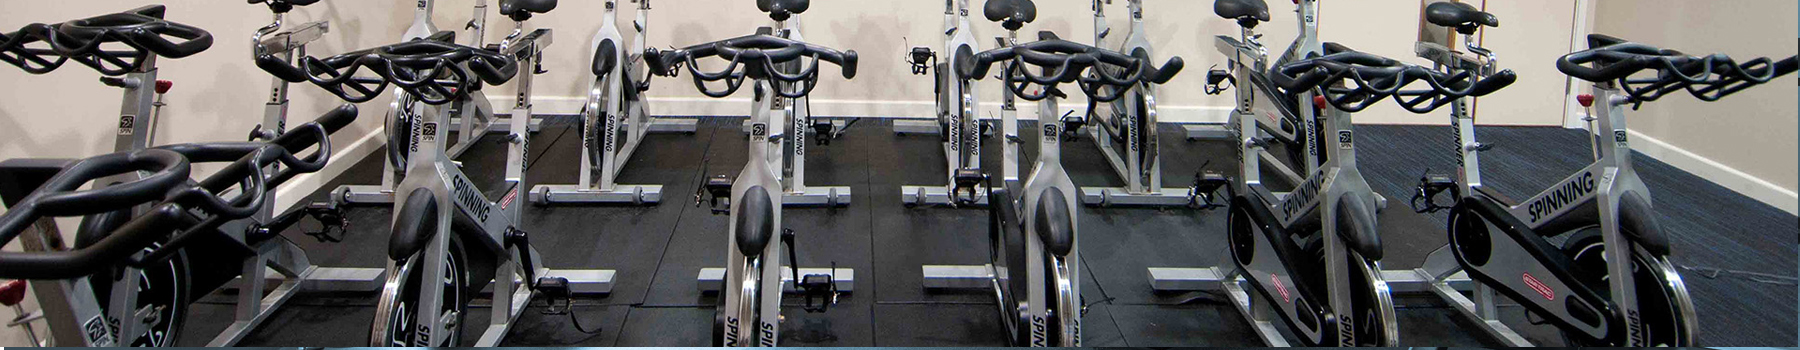 Fitness Center Consultants Are The Backbone Of Your Gym